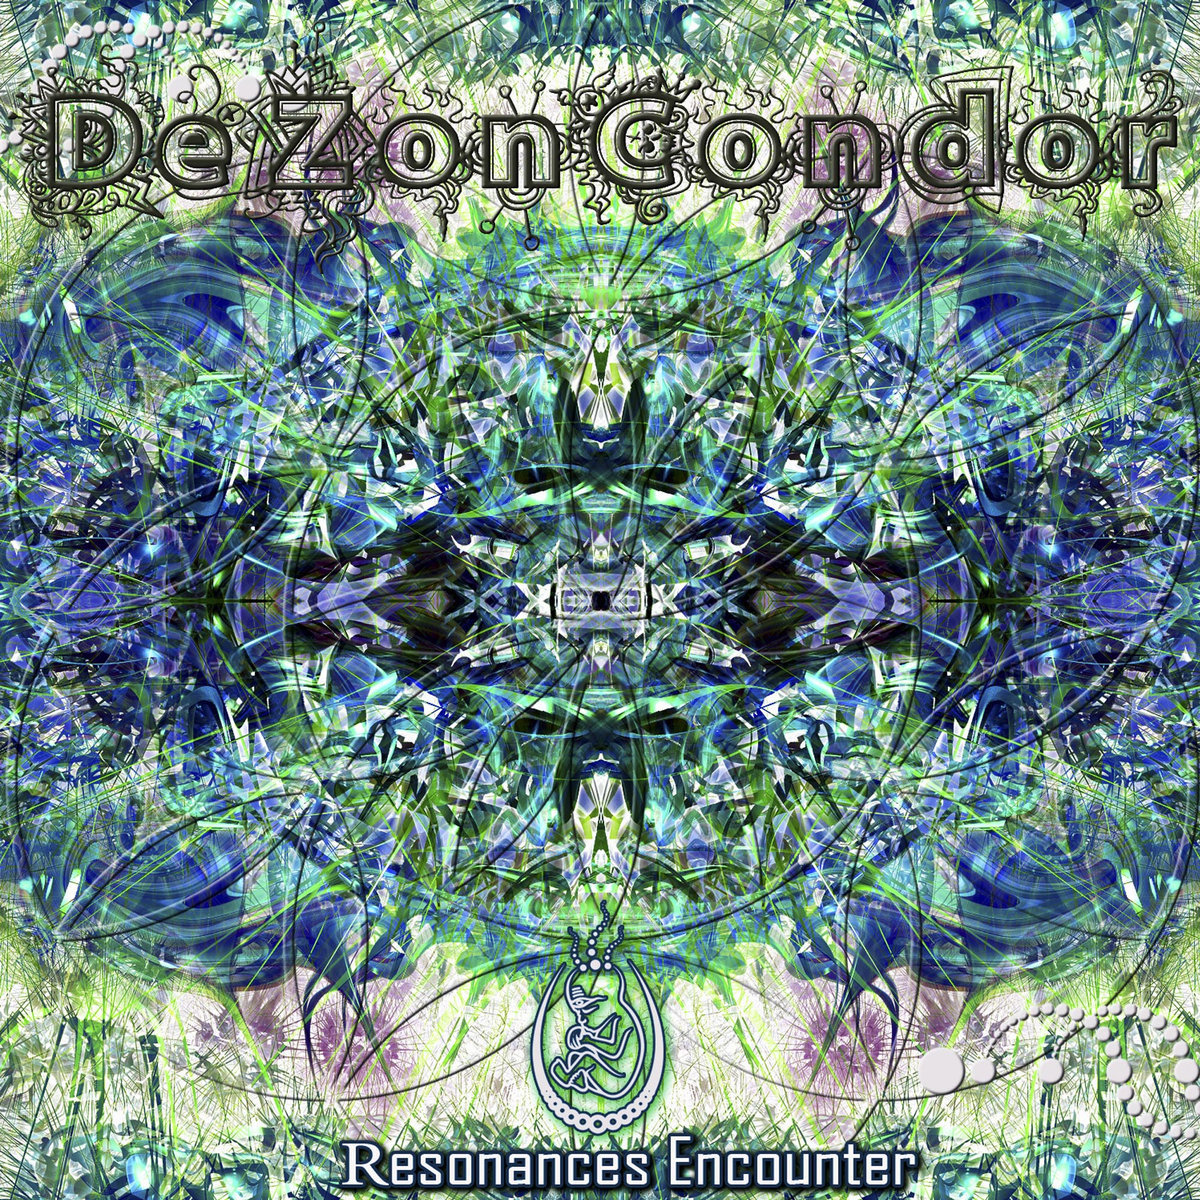 DezonCondor - Resonances Encounter (artwork)